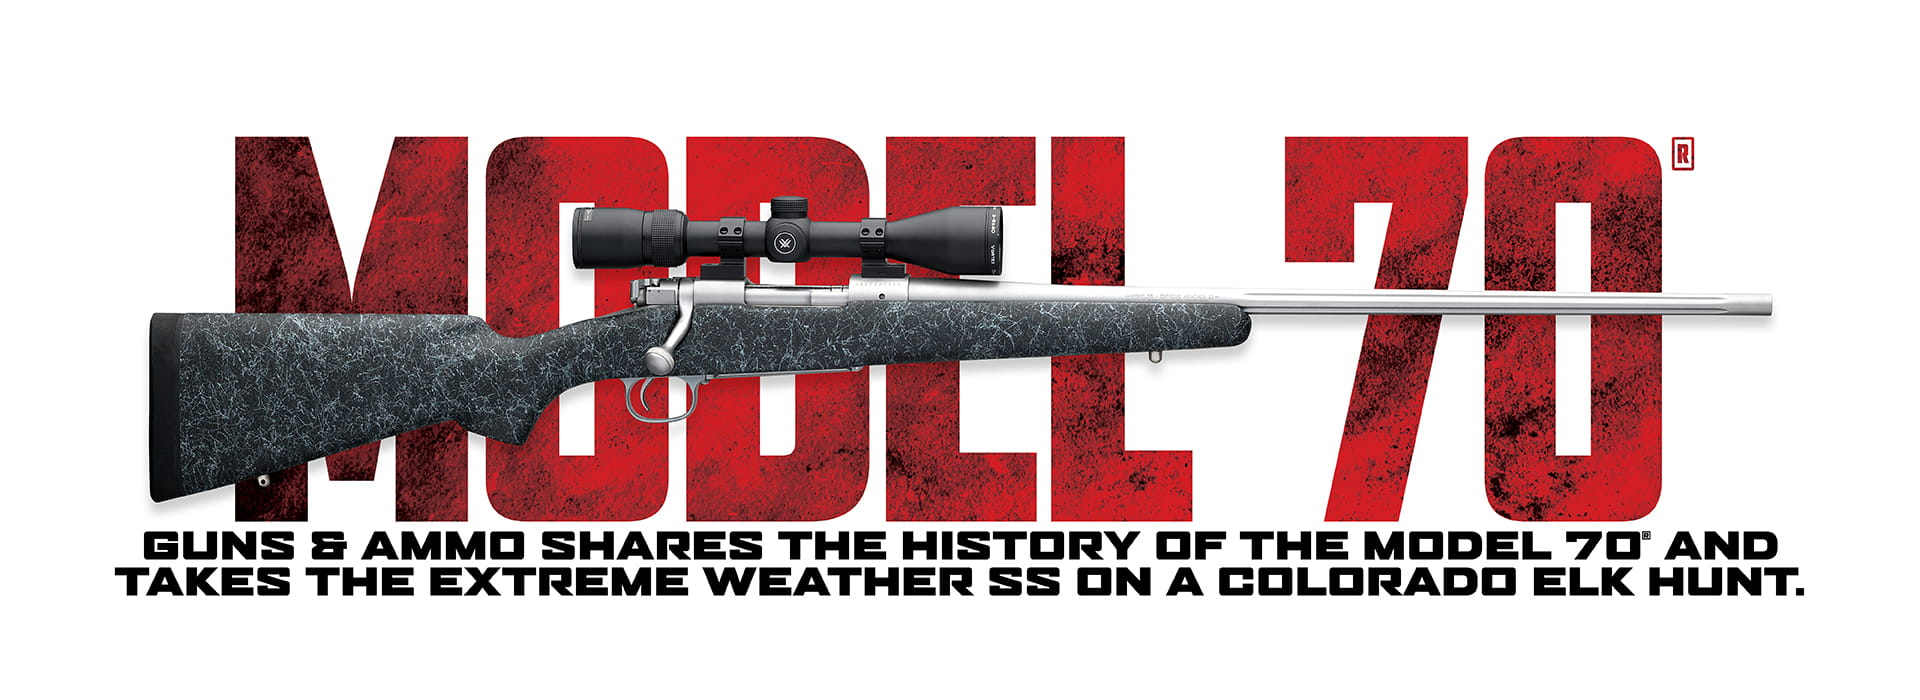 Model 70 Rifle Extreme Weather SS Banner